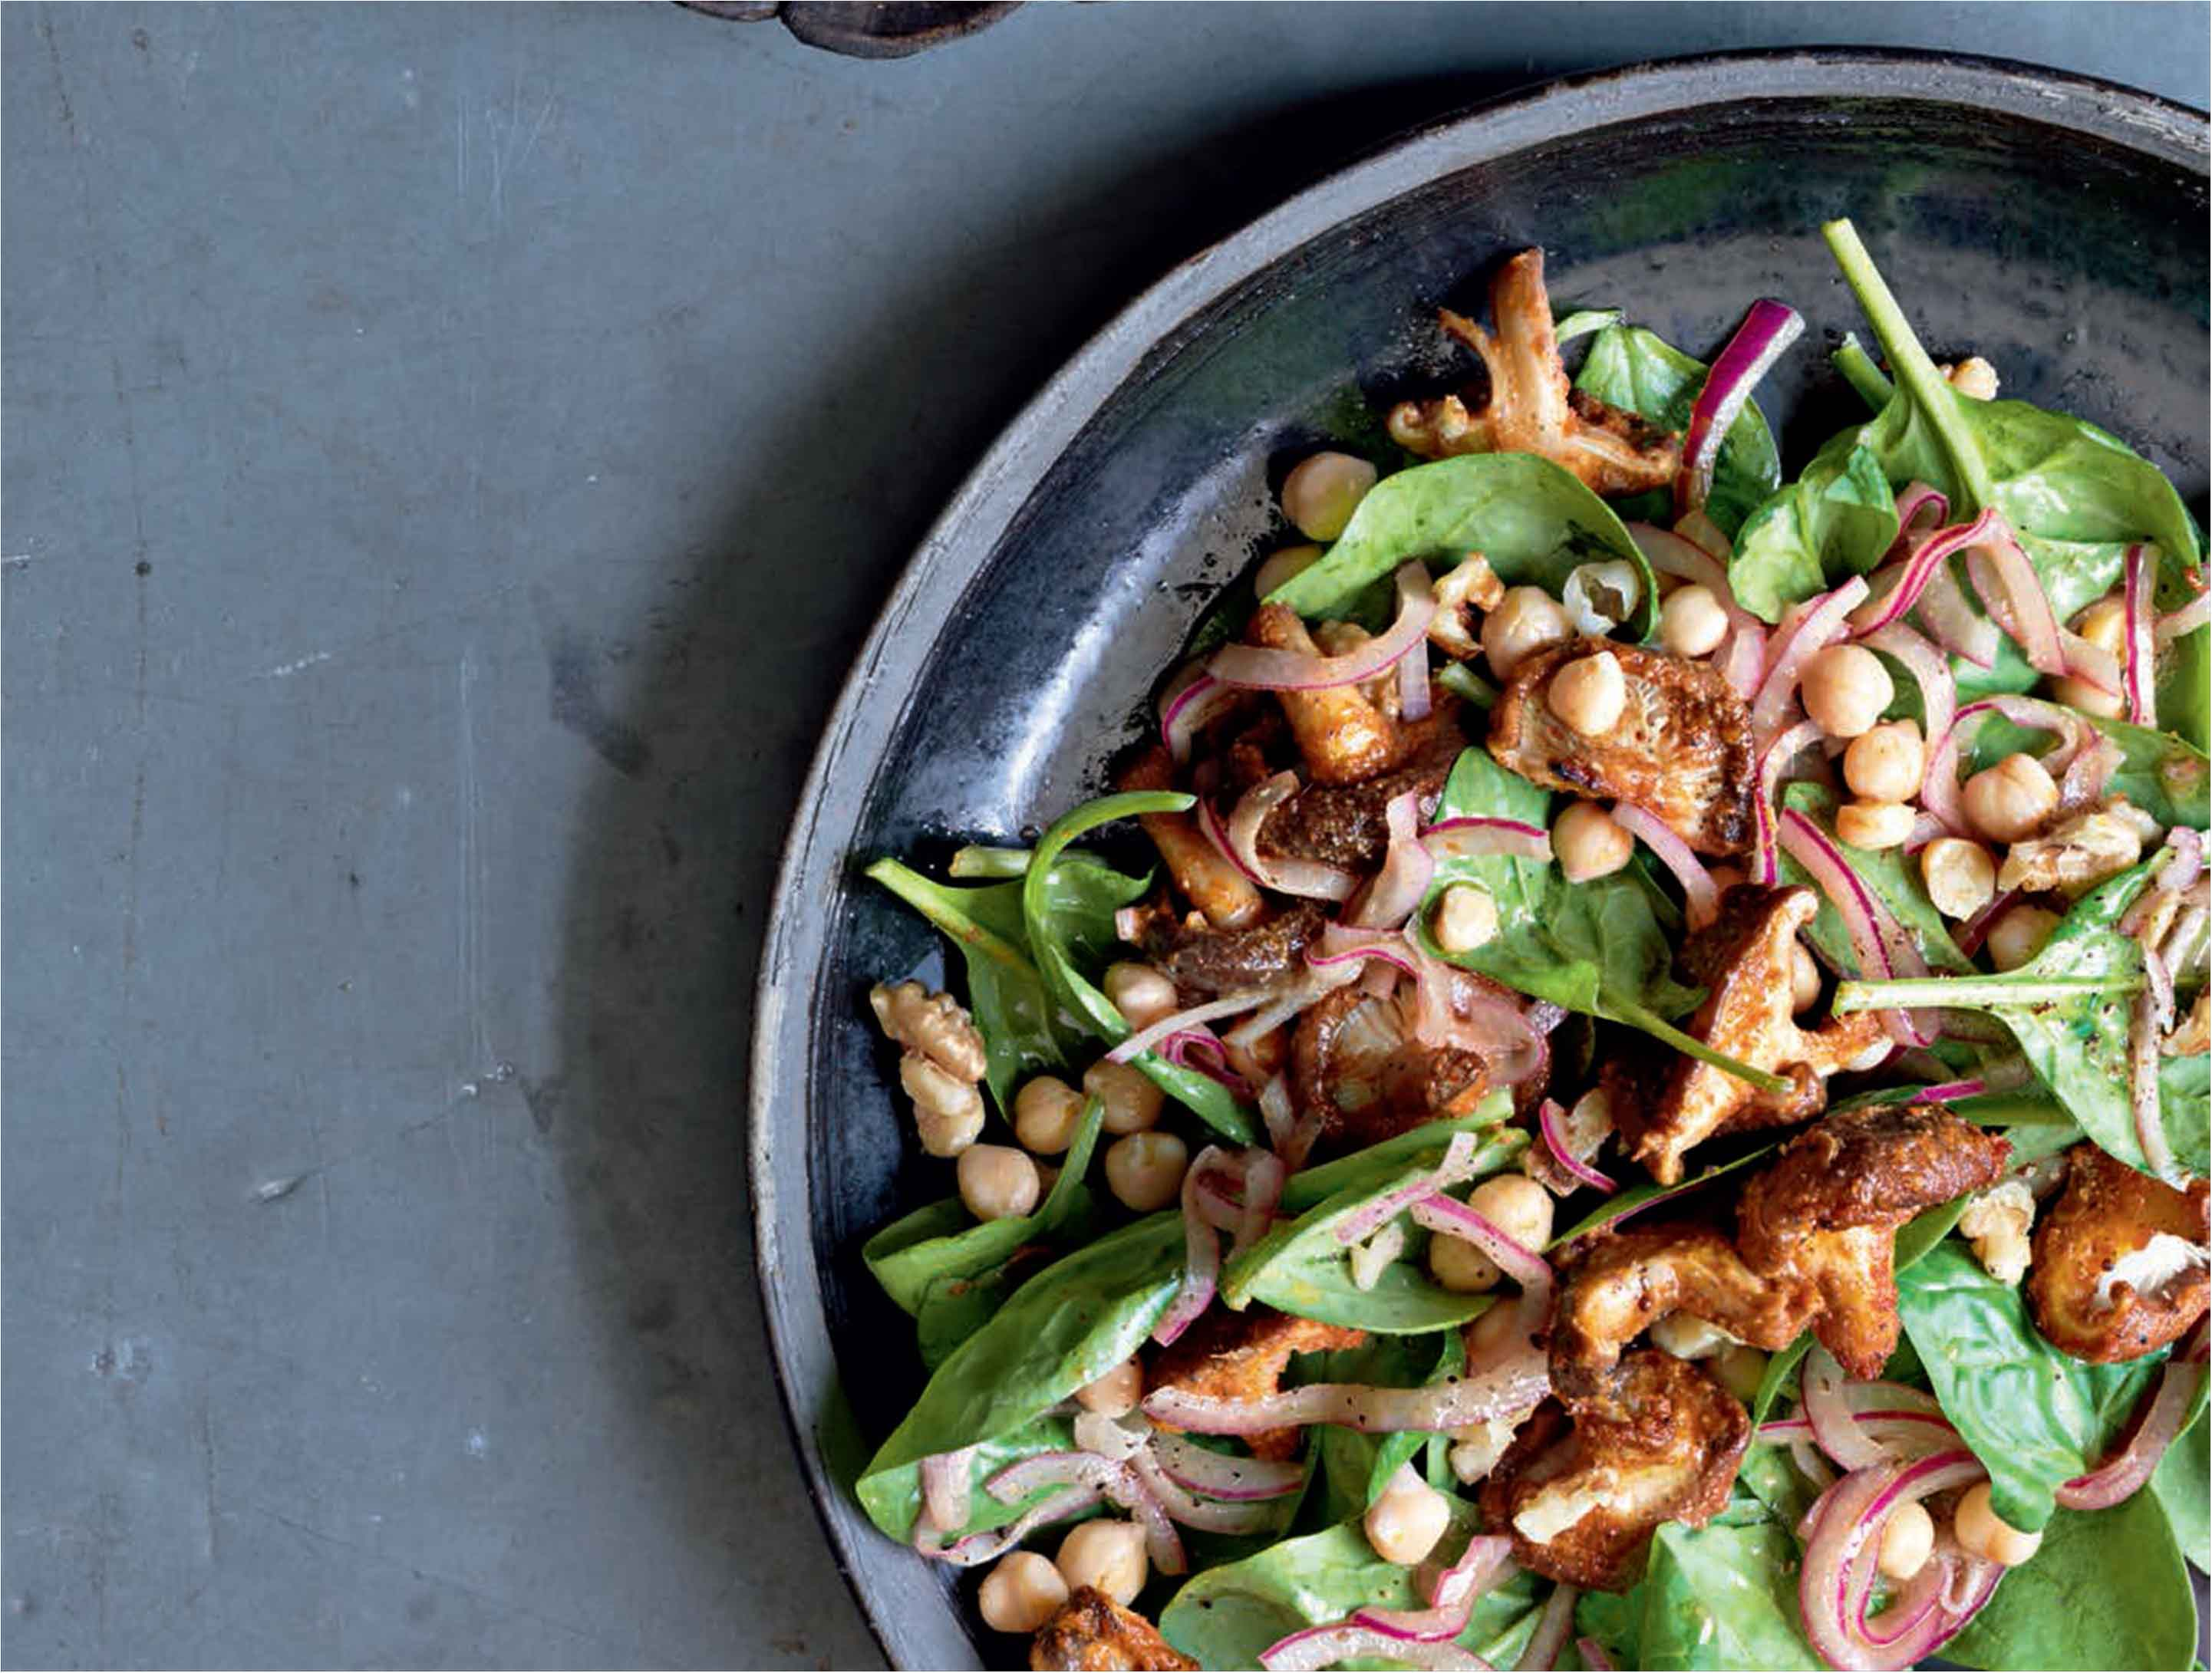 Warm tandoori mushroom, spinach and chickpea salad